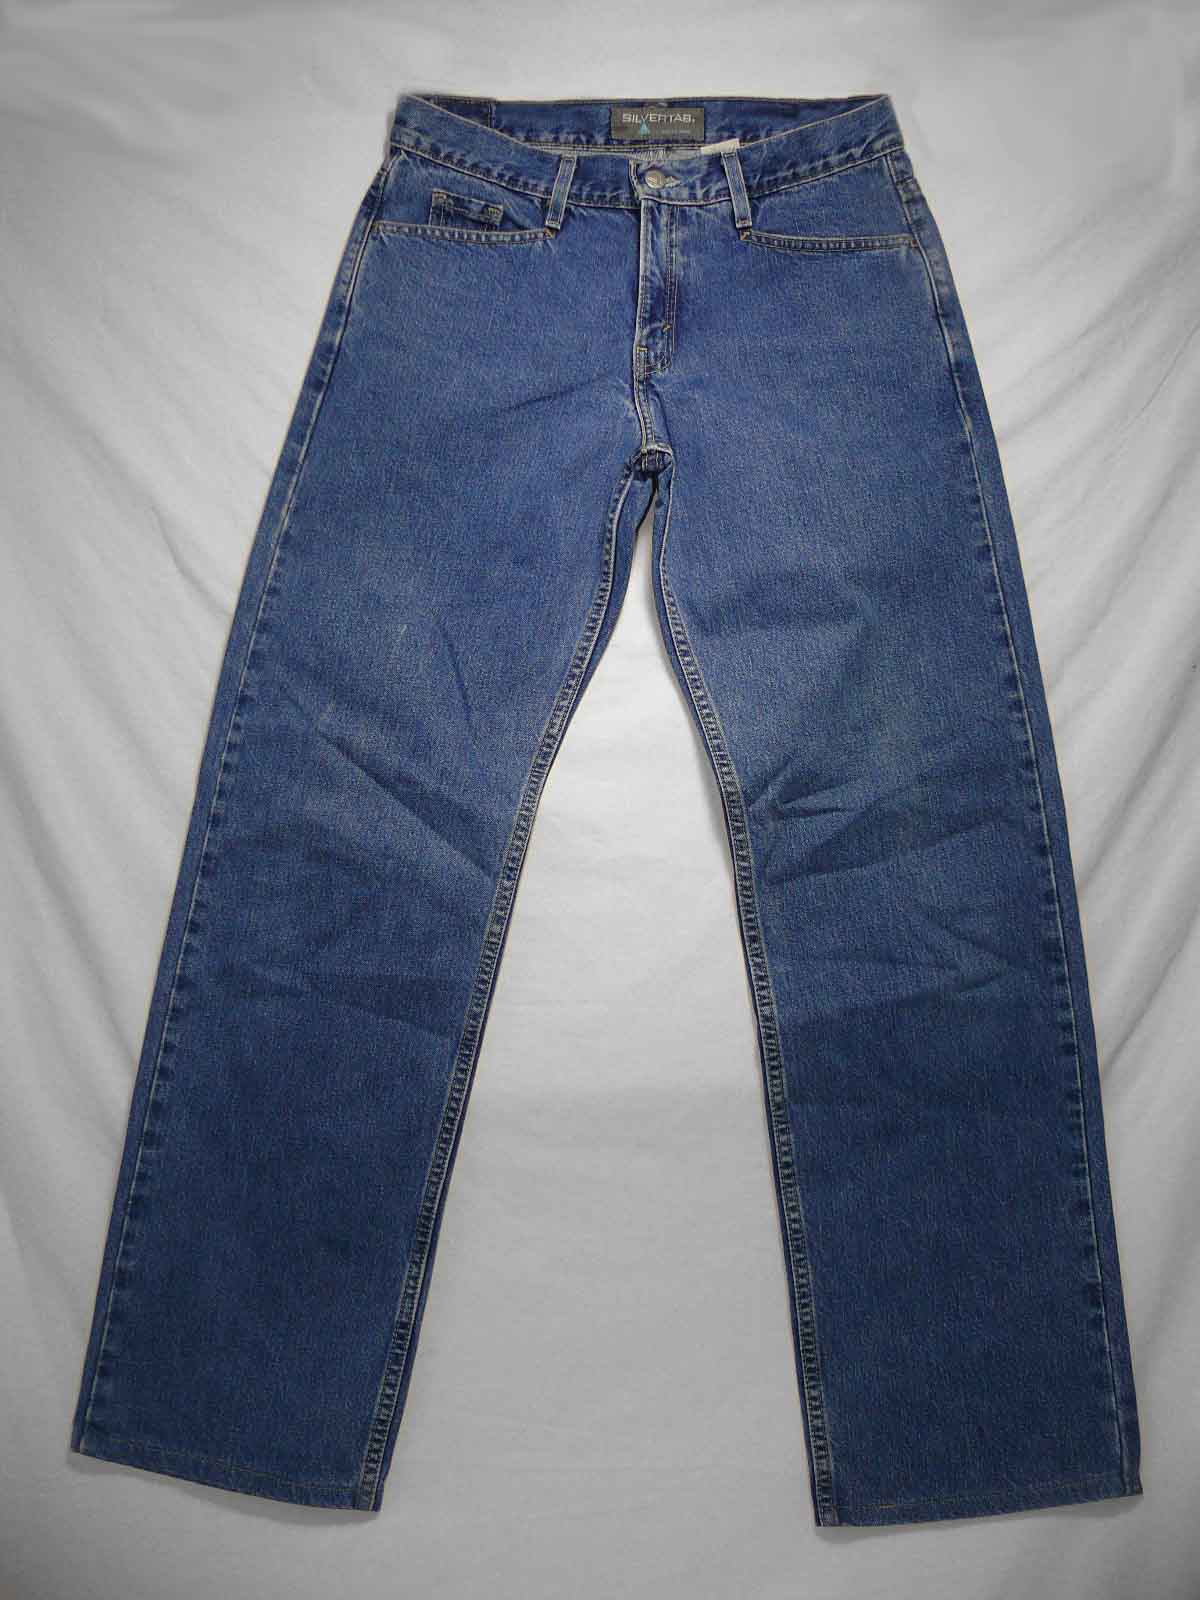 1cc7cd5c brand jeans, buy jeans, clothing stores, Color, Dark Wash, levi jeans